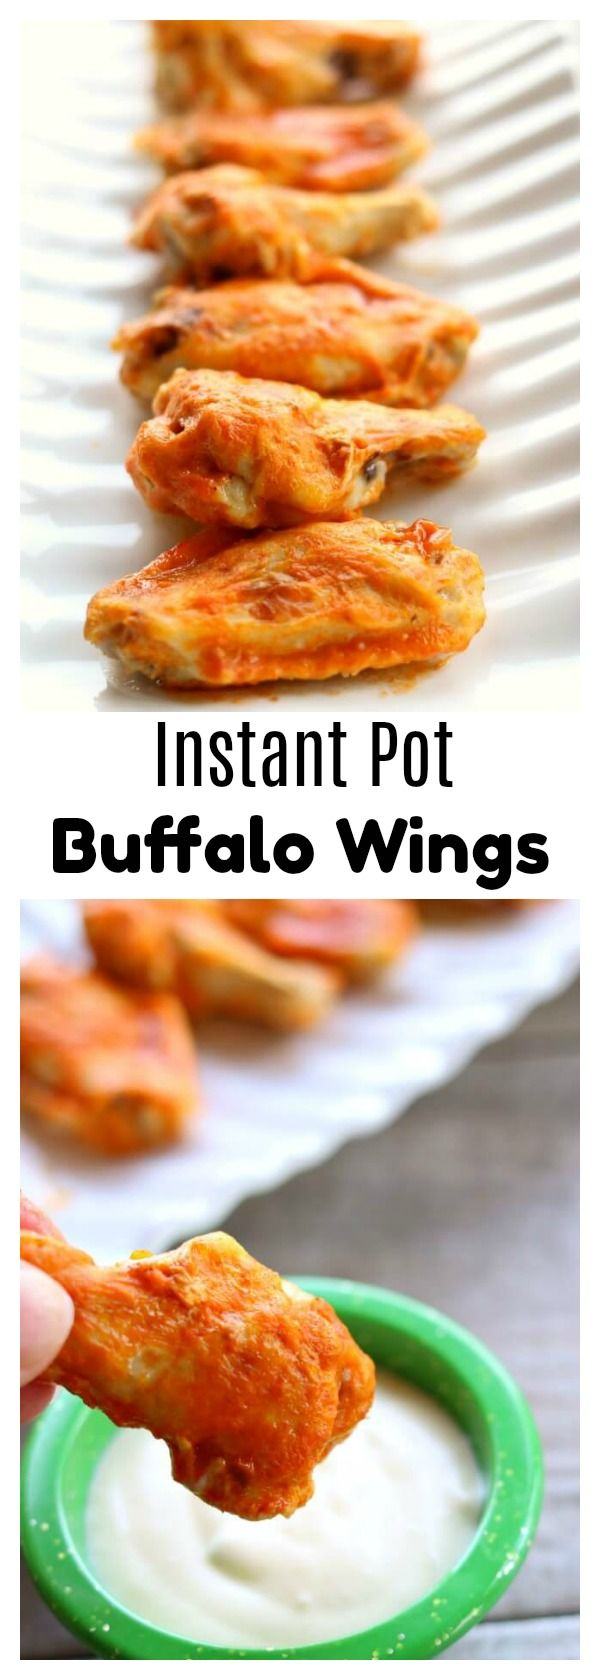 Instant Pot Buffalo Wings–throw a bag of frozen chicken wings in your electric pressure cooker and cook for just 4 minutes, baste with delicious buffalo wing sauce and broil in your oven for another few minutes and you have super tender and flavorful wings. #instantpot #instapot